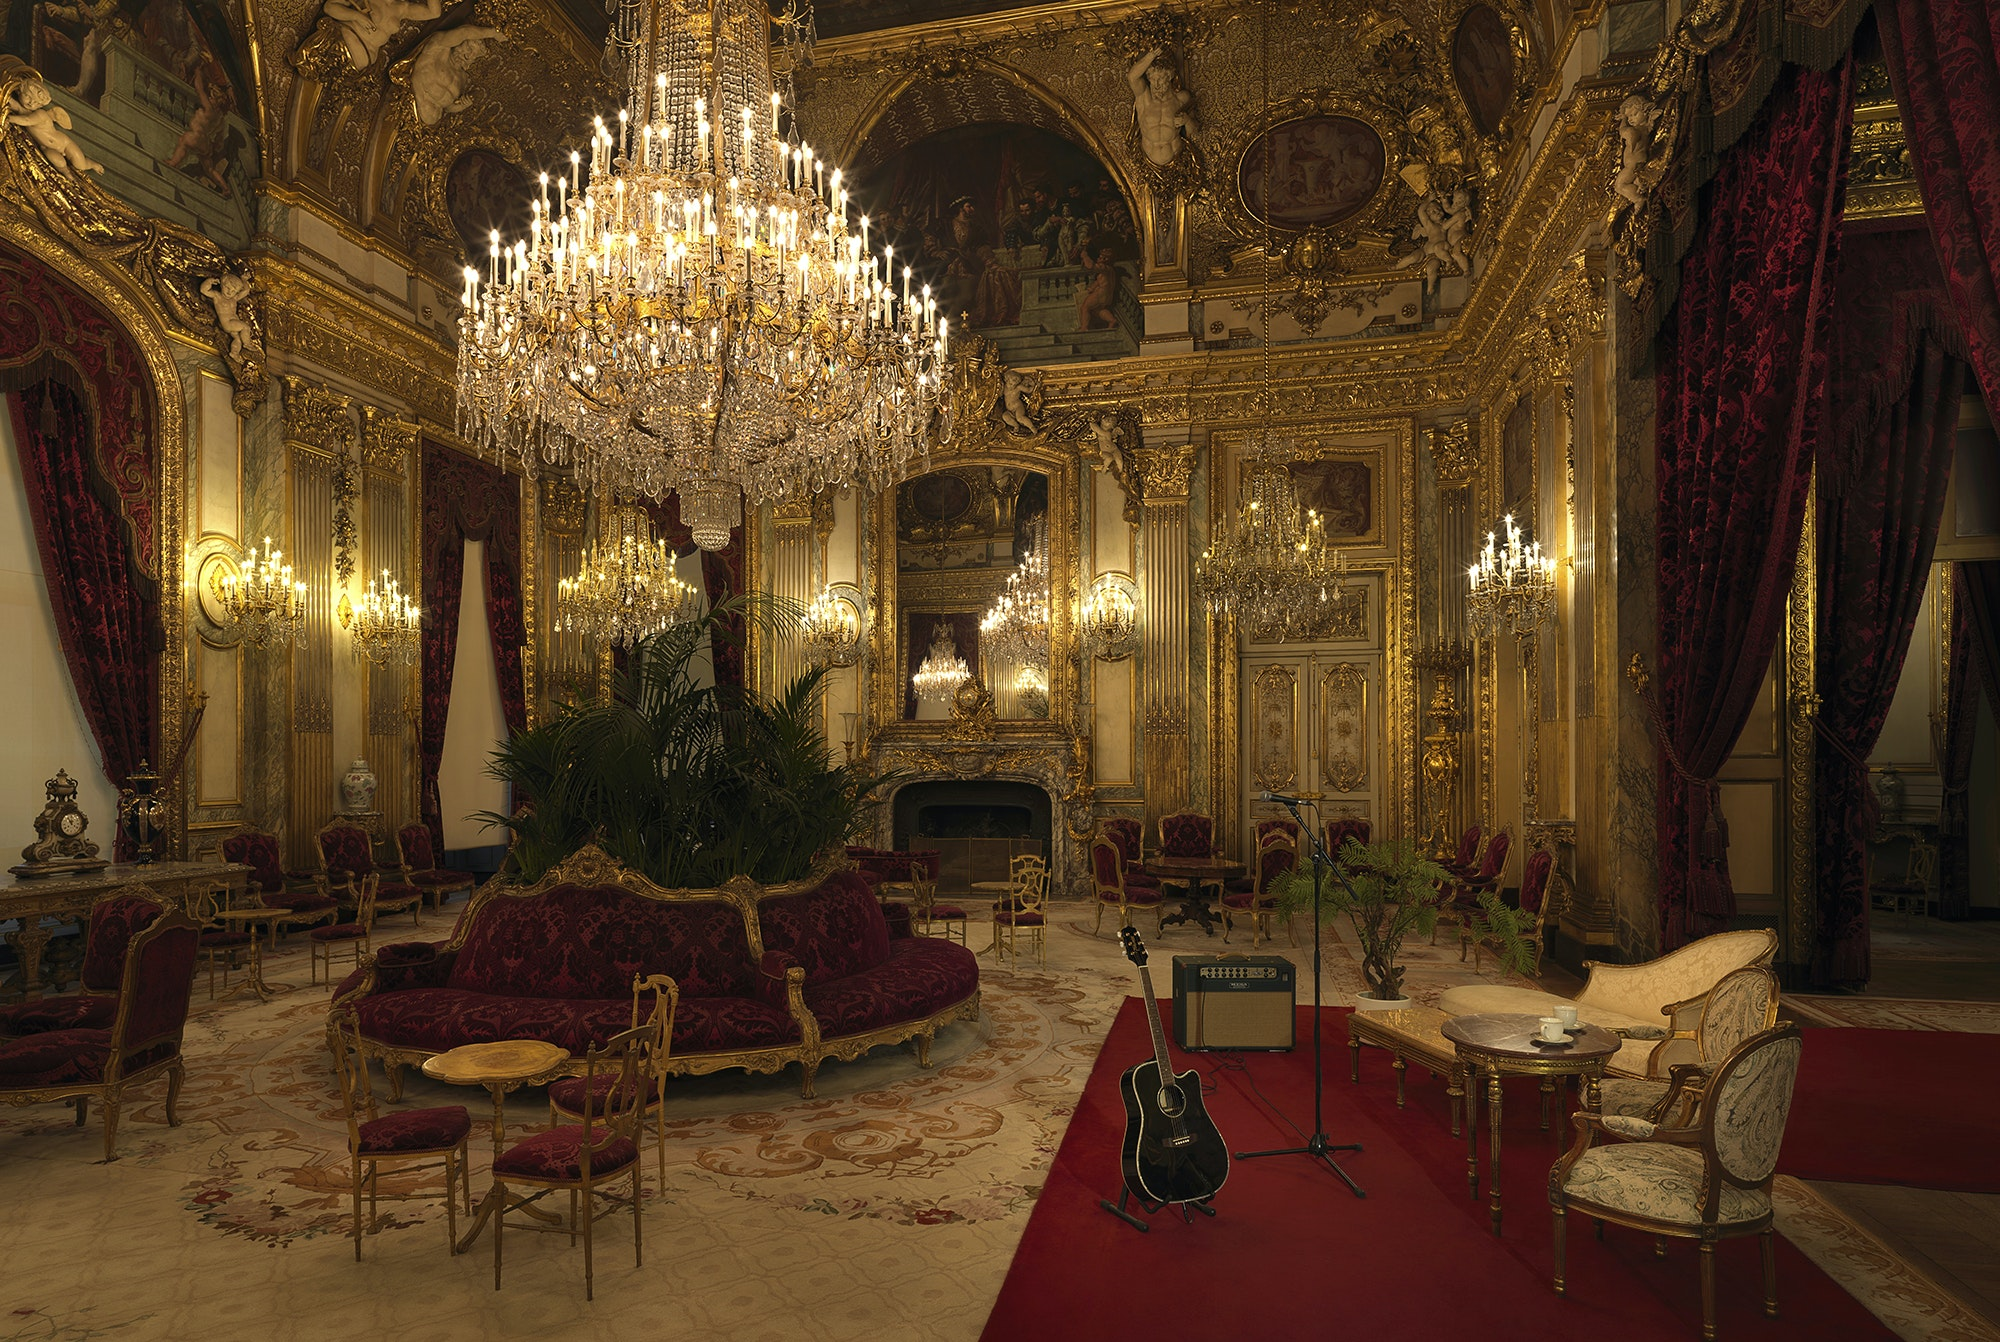 After dinner, you'll be treated to a concert in Napoleon III's chambers.